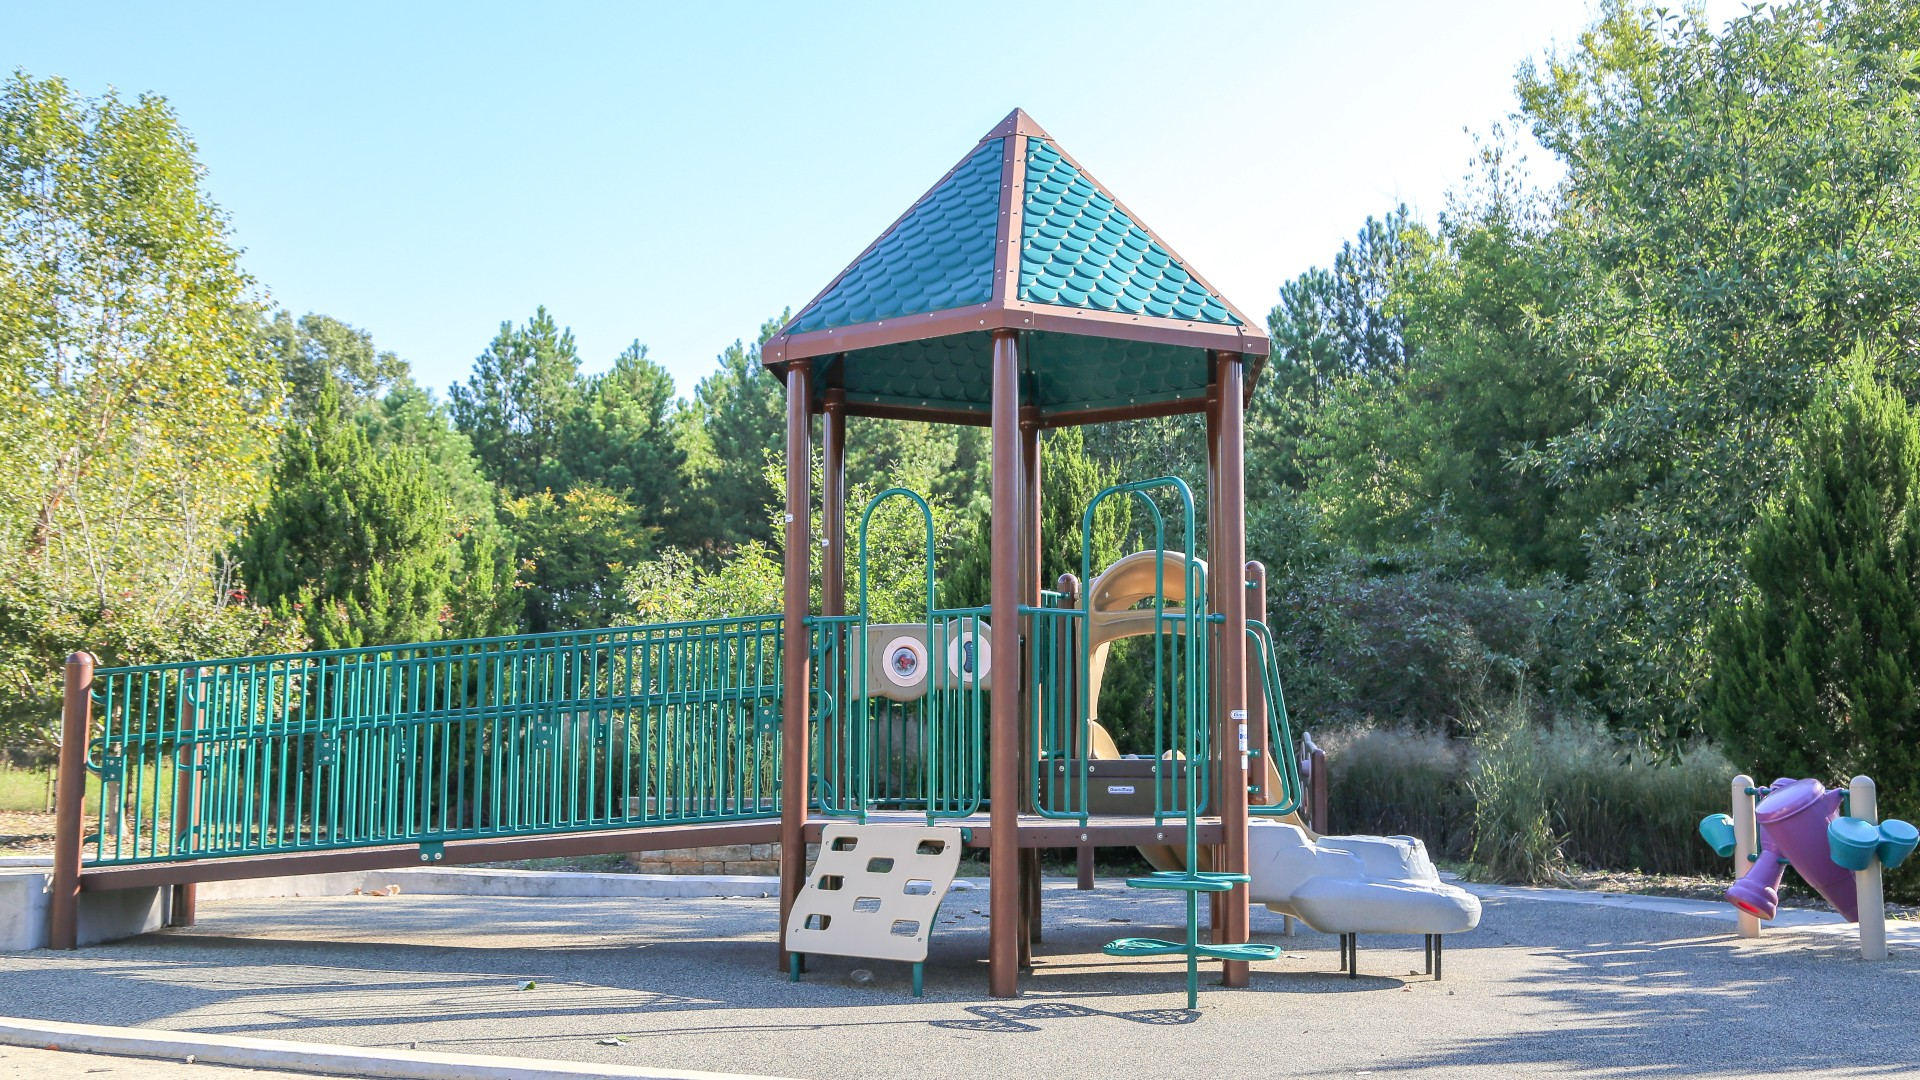 A smaller playground with slides and climbing equipment at Marsh Creek